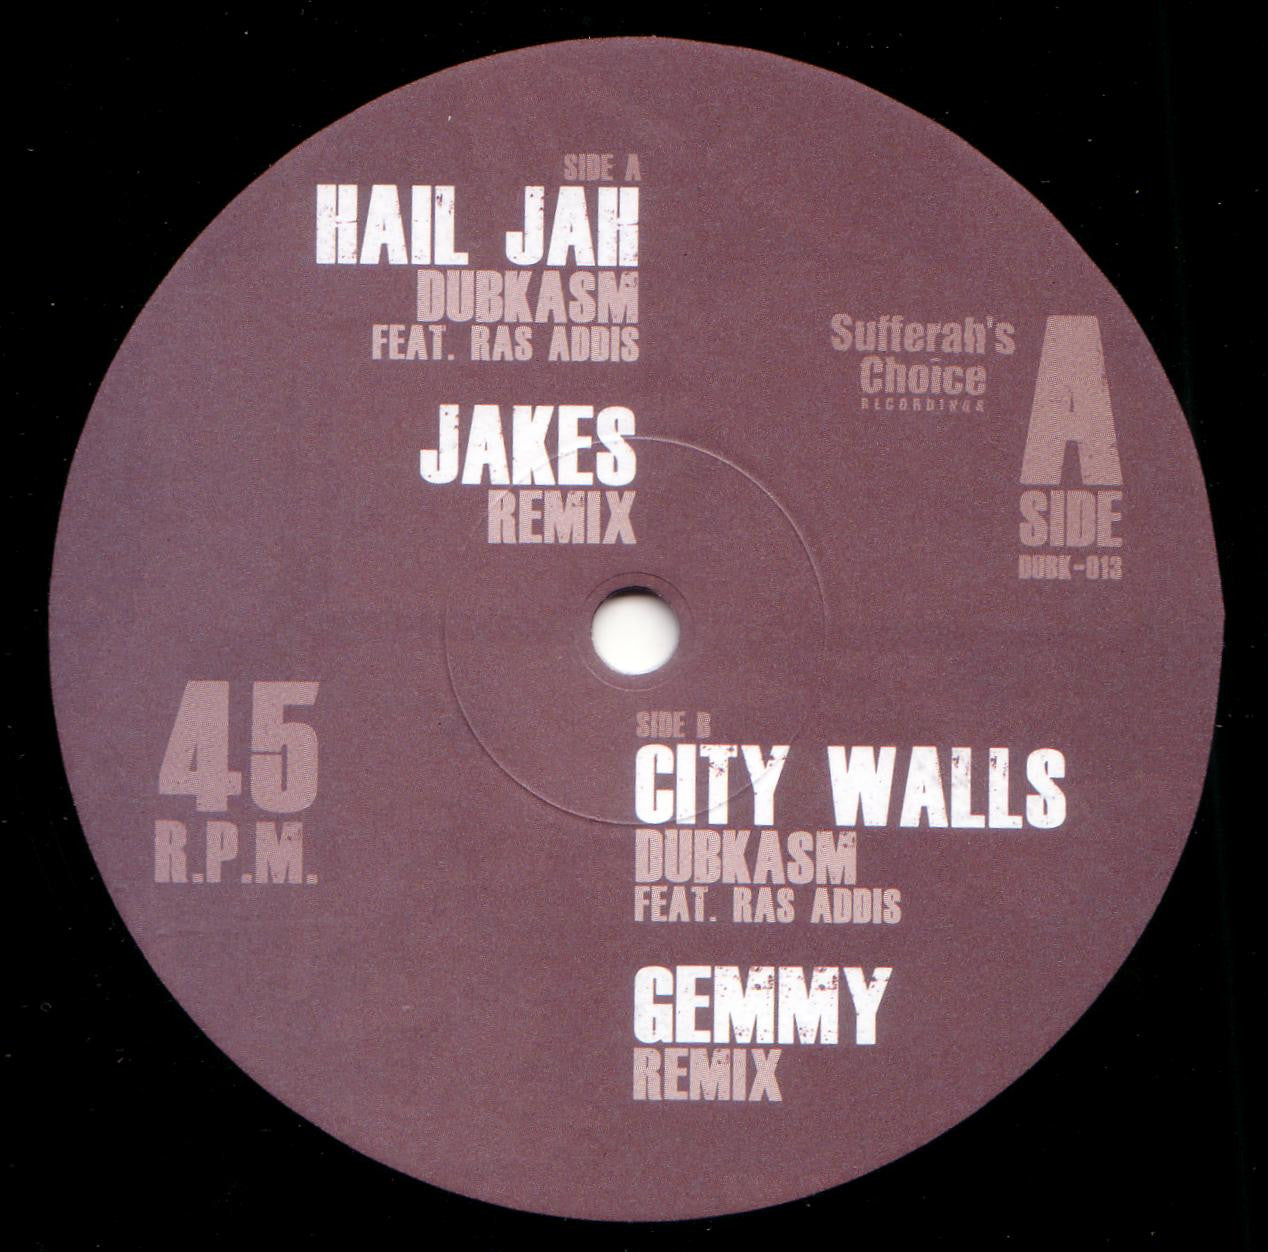 Dubkasm - Hail Jah (Jakes Remix) / City Walls (Gemmy Remix) - Unearthed Sounds